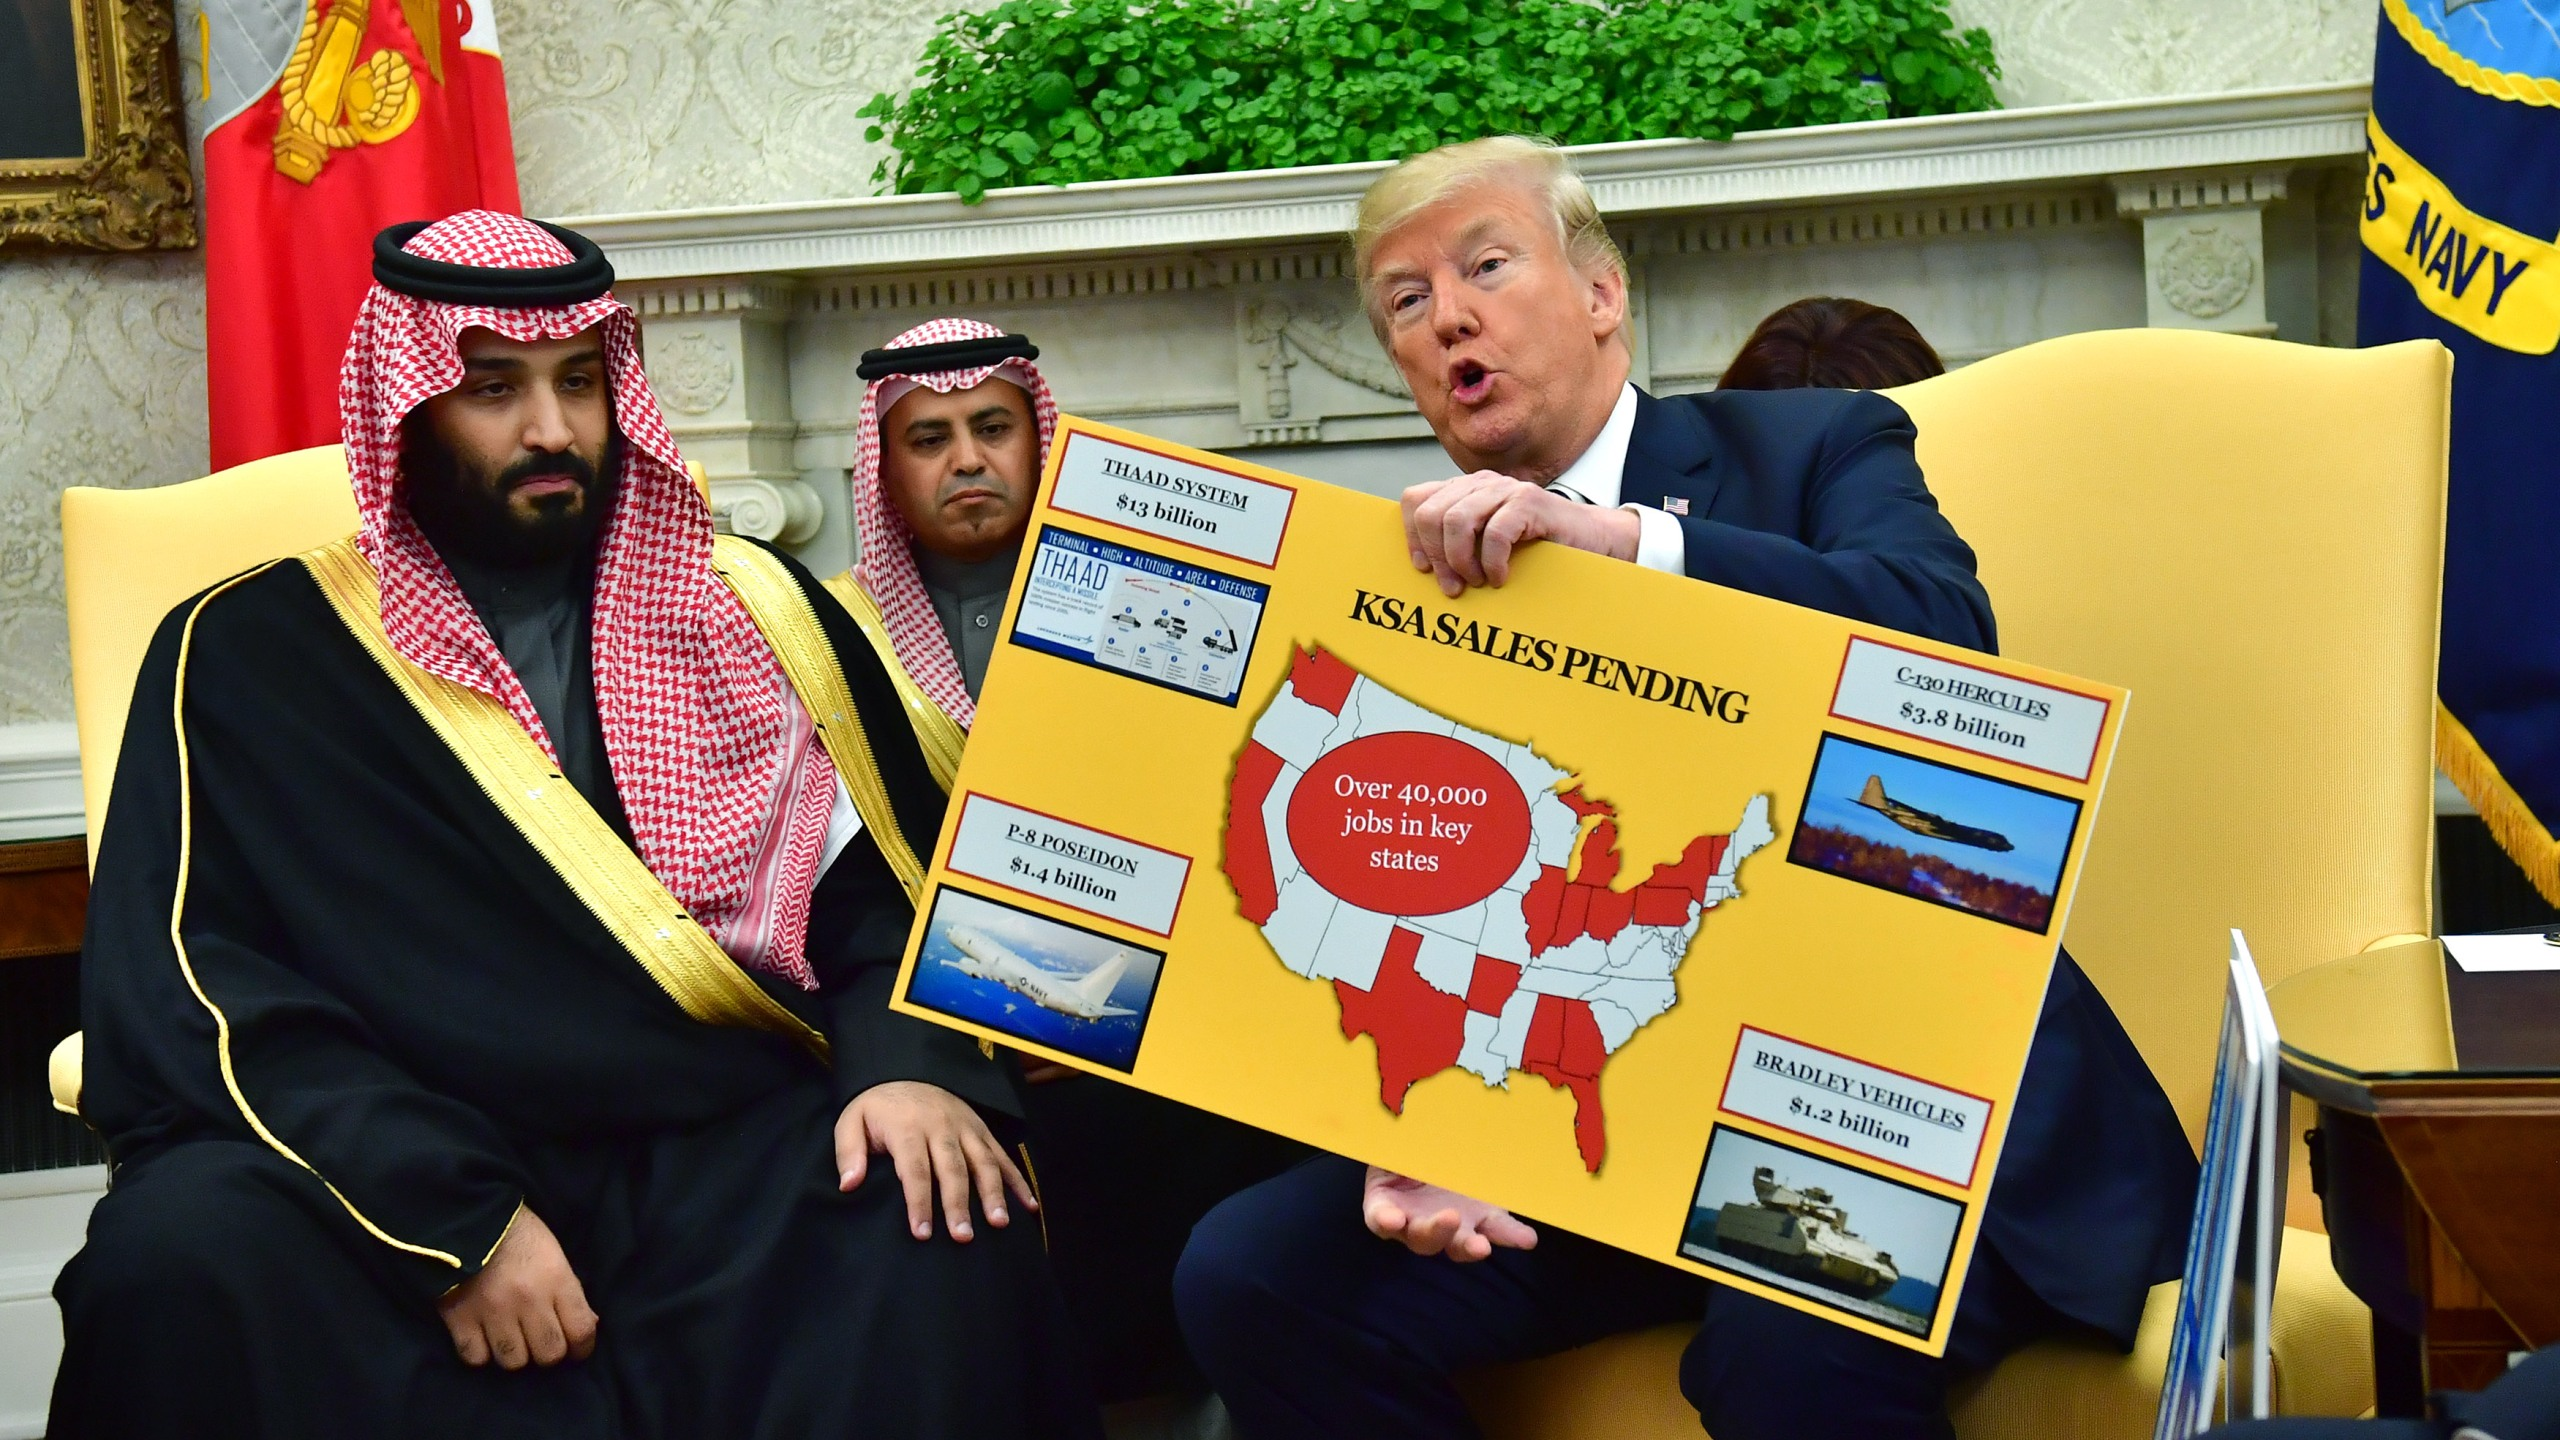 Donald Trump holds up a chart of military hardware sales as he meets with Crown Prince Mohammed bin Salman of Saudi Arabia at the White House on March 20, 2018, in Washington, D.C. (Credit: Kevin Dietsch-Pool/Getty Images)